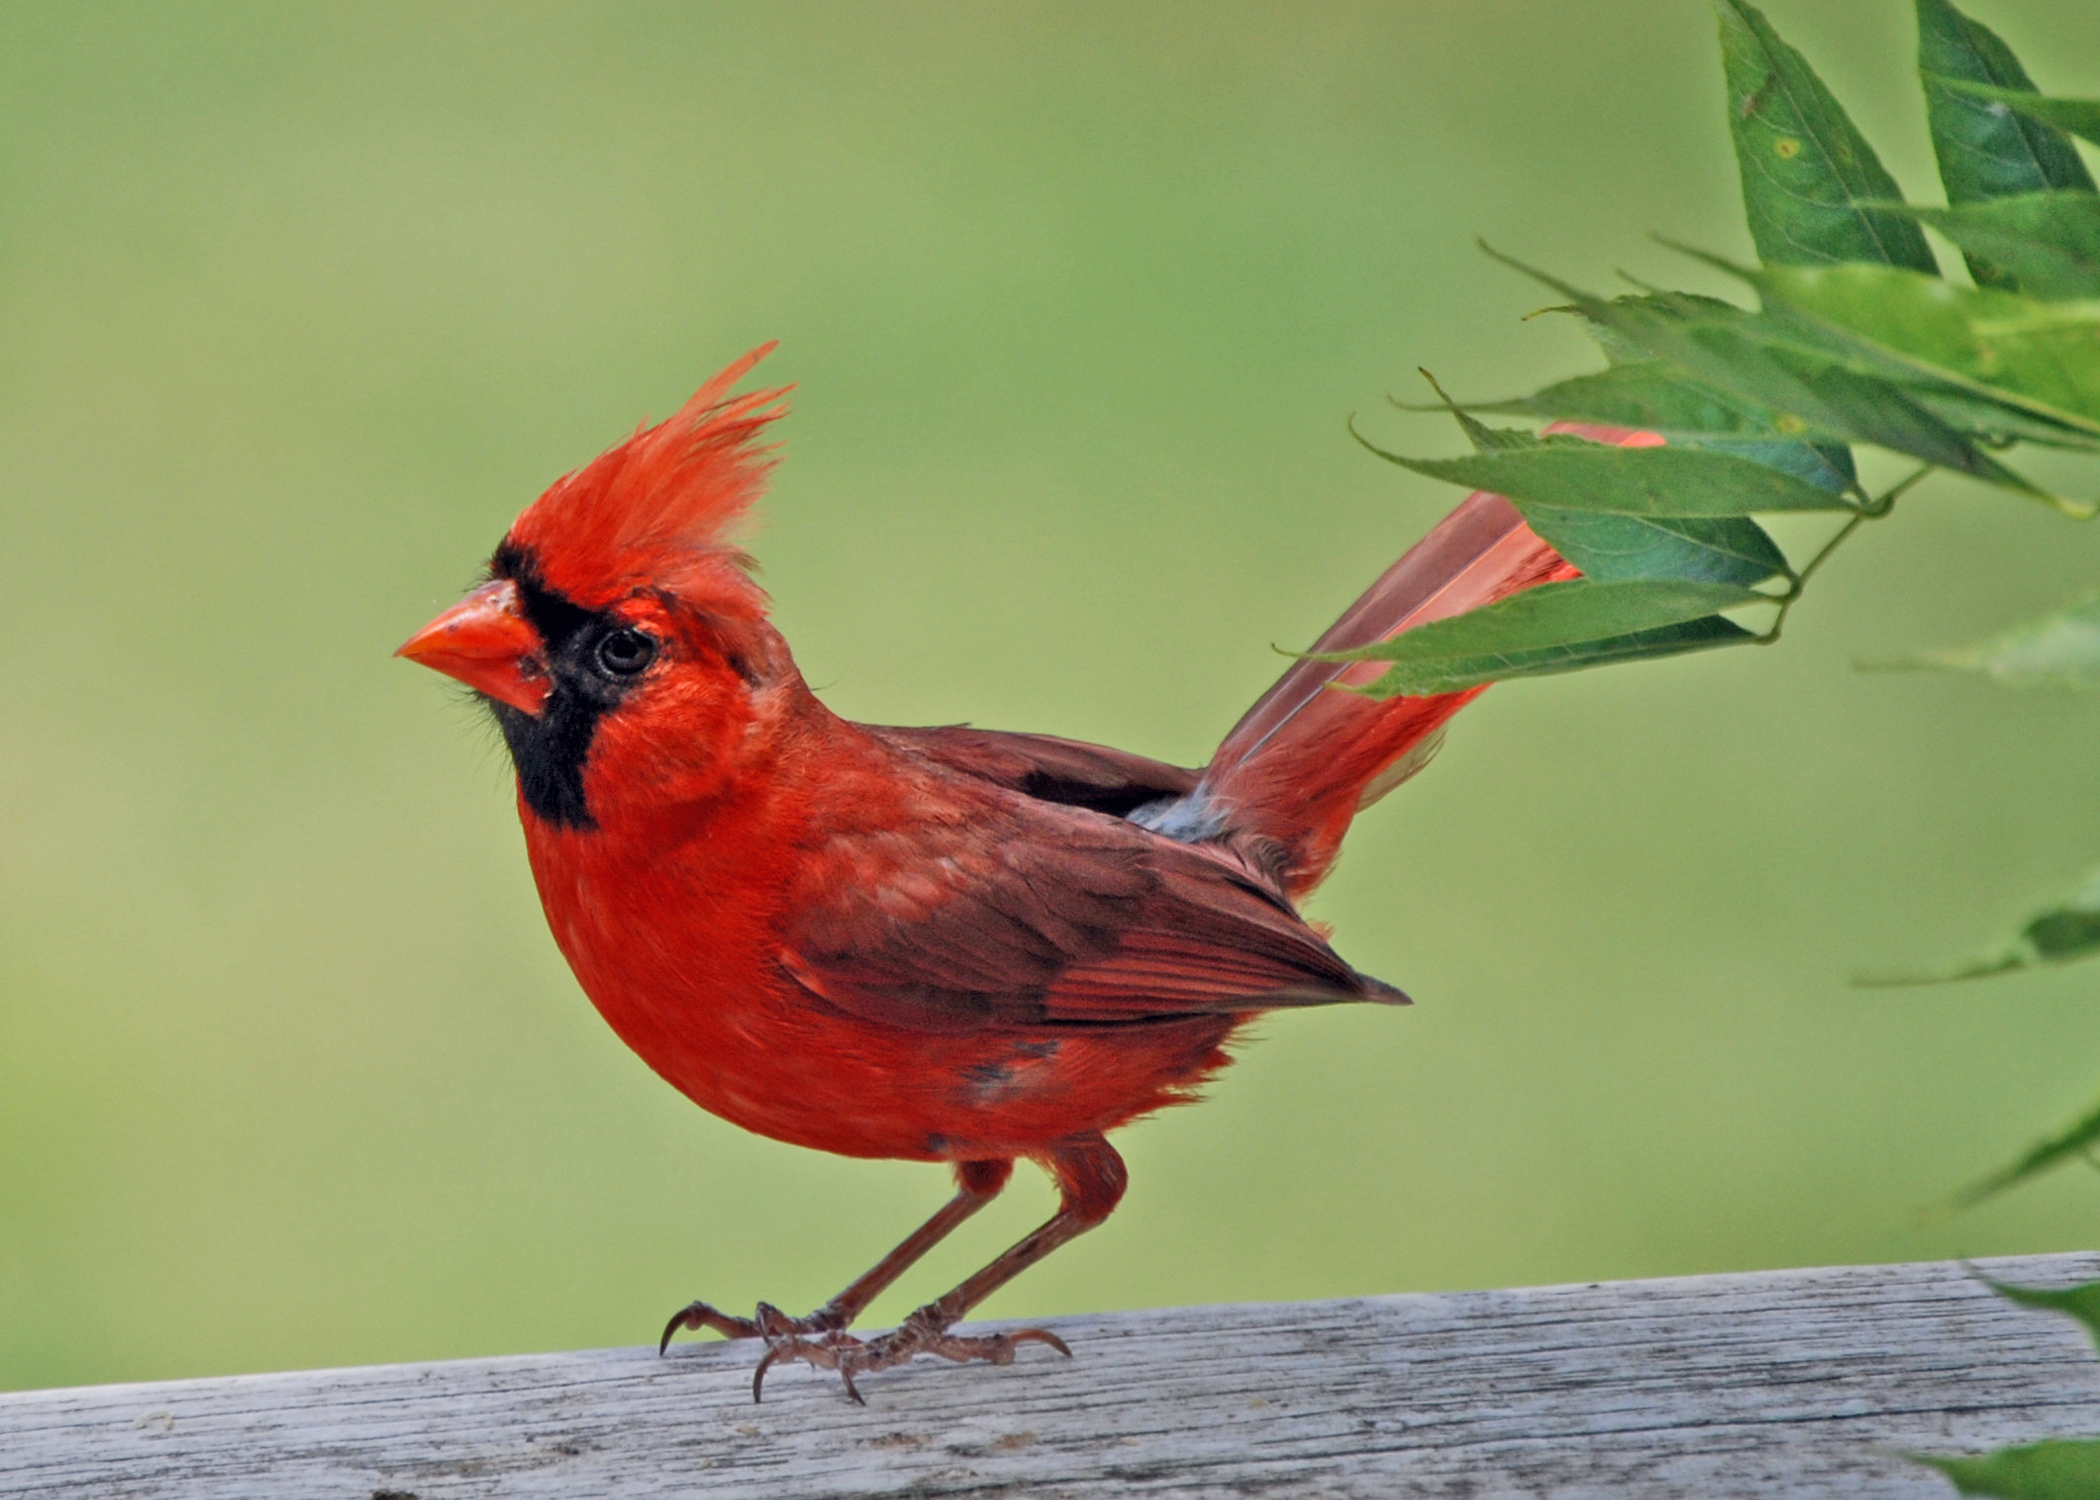 The red birds have a special meaning cardinals it is what it is redflow buycottarizona Images